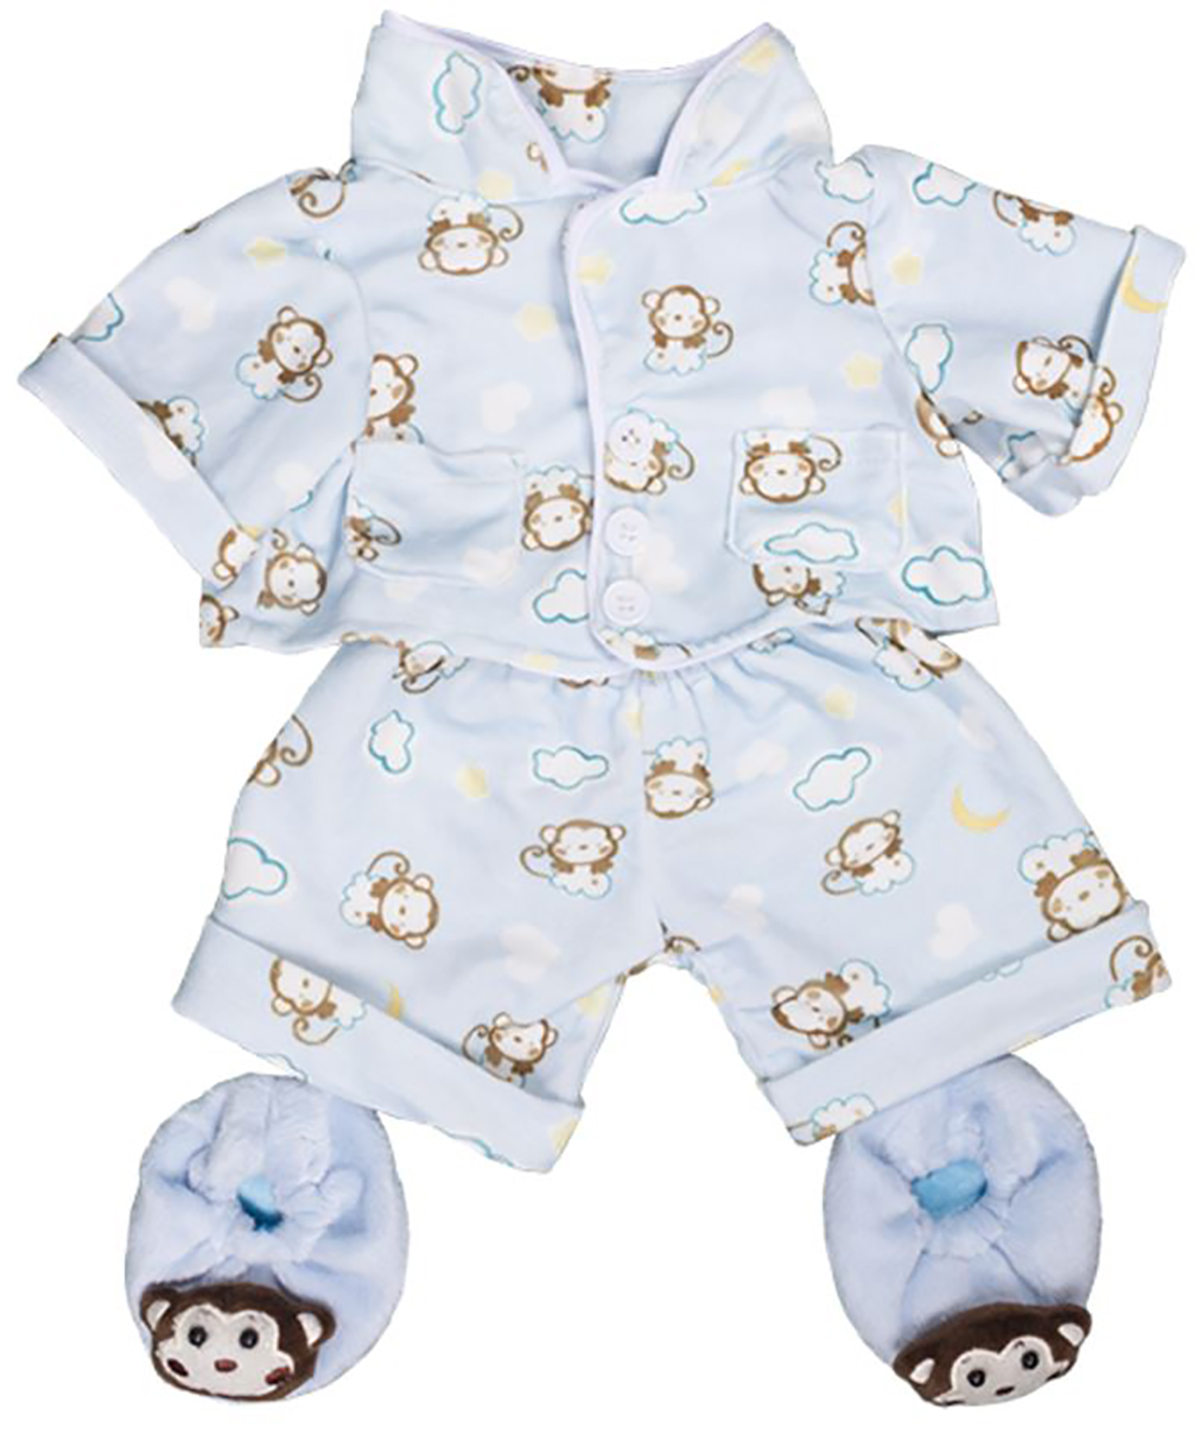 "Bear Factory Doll Outfits Fit 14-18/"" Stuffed Bears Animal Blue Bear Bedtime Robe"